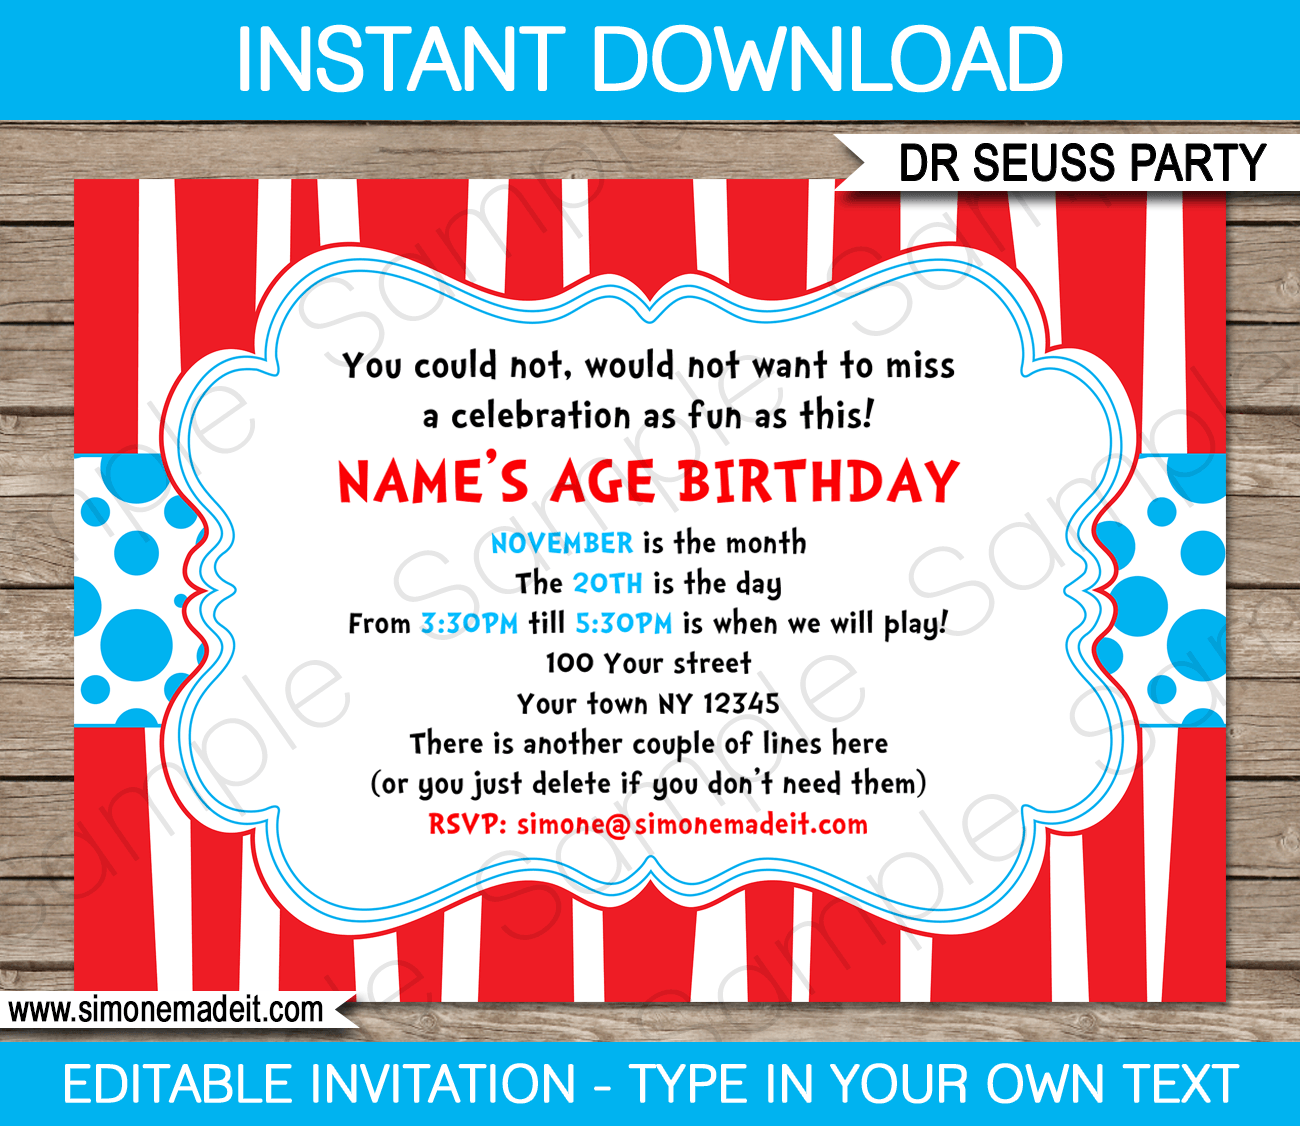 Dr Seuss Party Invitations Birthday Party Template